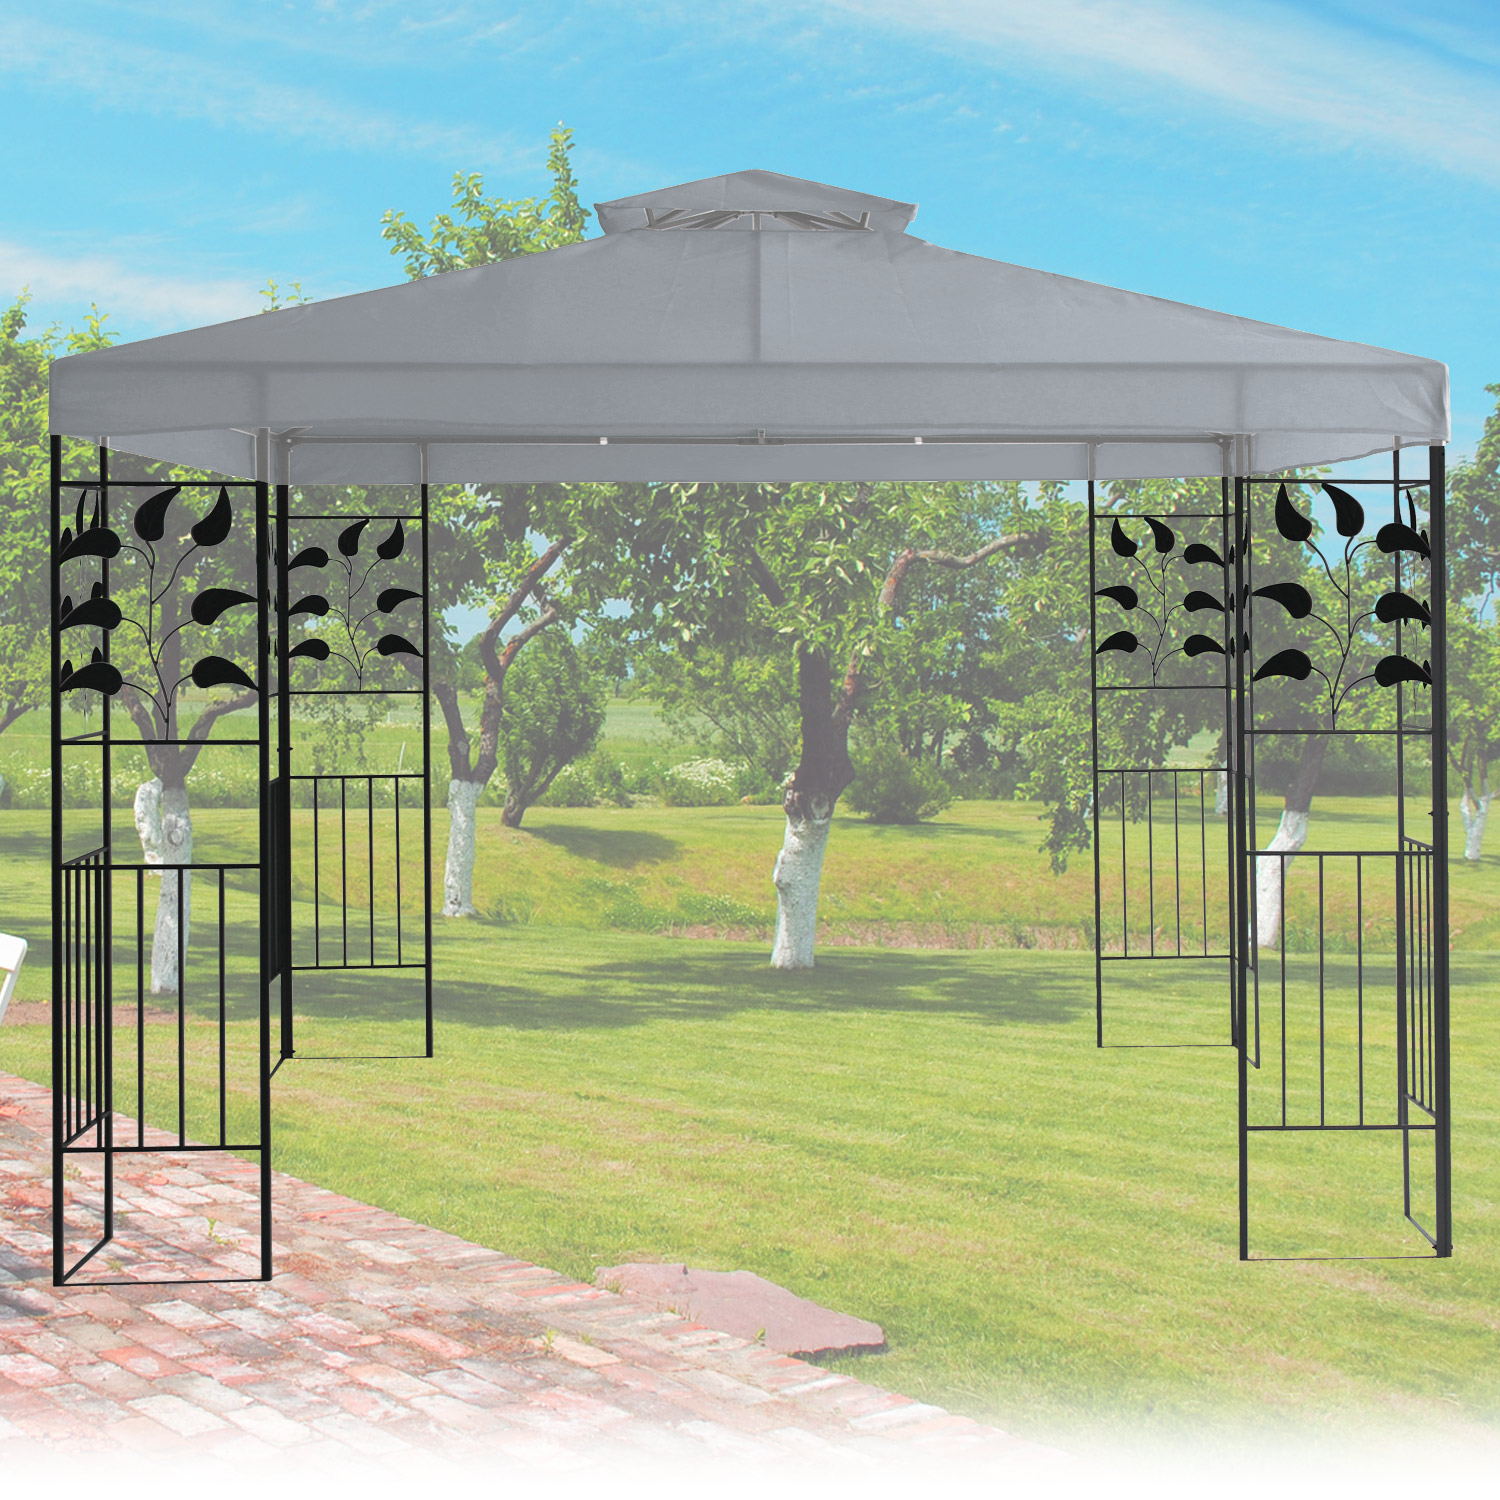 pavillon 3x3m metall gartenpavillon festzelt dach zelt garten wasserfest grau ebay. Black Bedroom Furniture Sets. Home Design Ideas